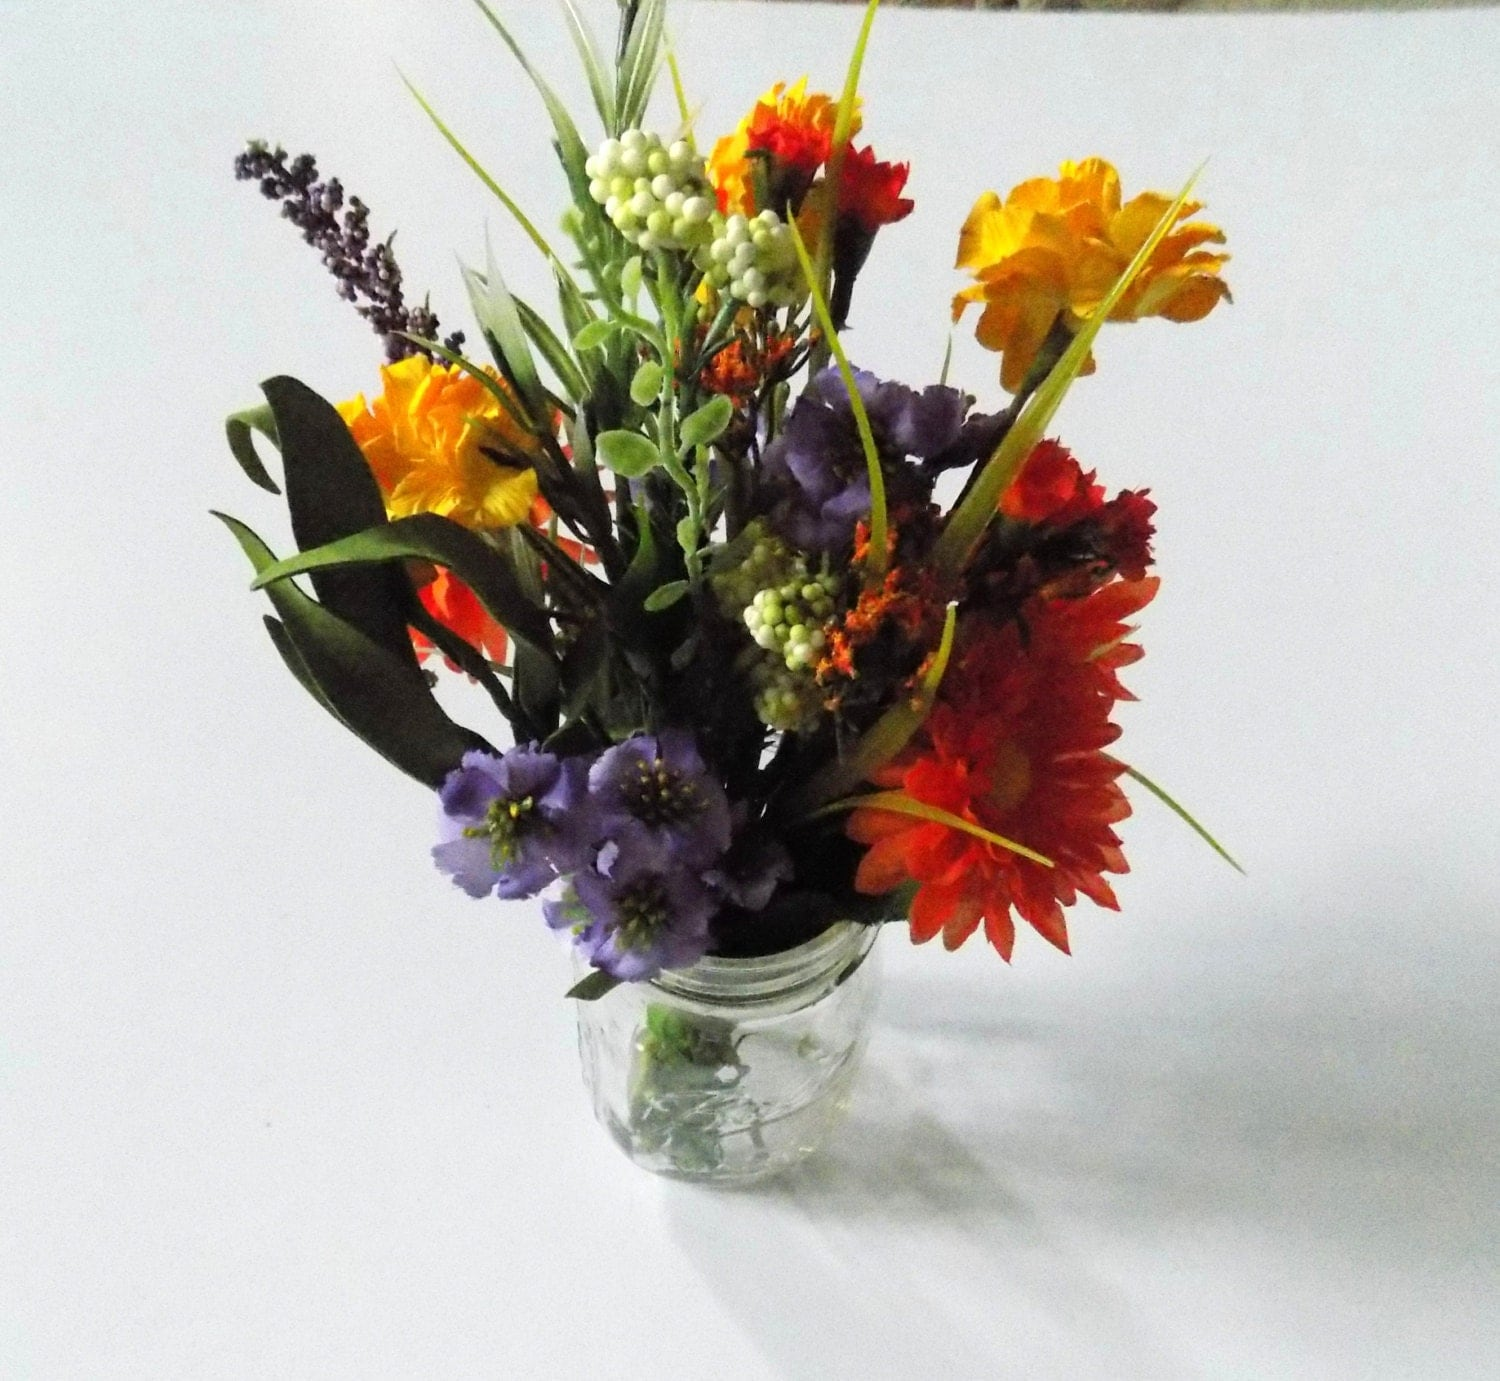 Flower Arrangements In Wine Bottles: Wildflower Centerpieces For Mason Jars Wine Bottle Silk